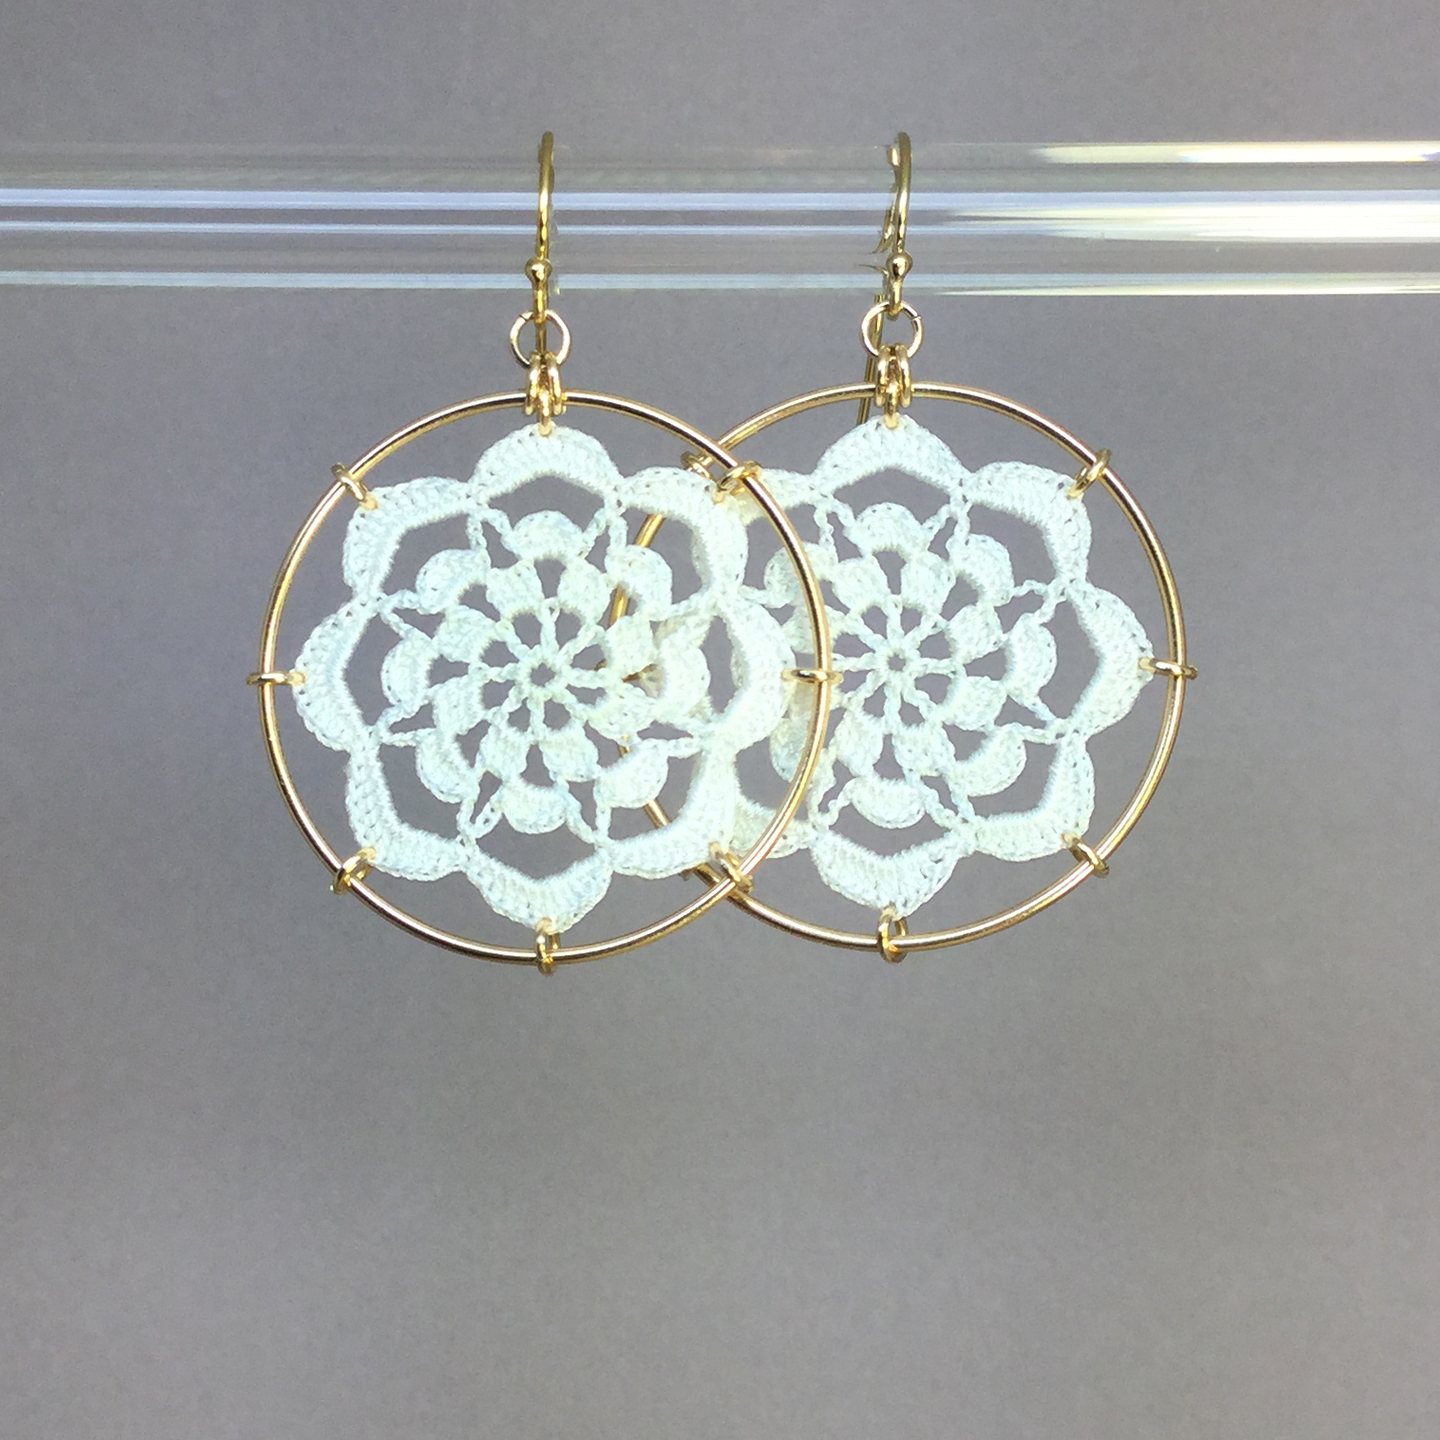 Serendipity earrings, gold, white thread